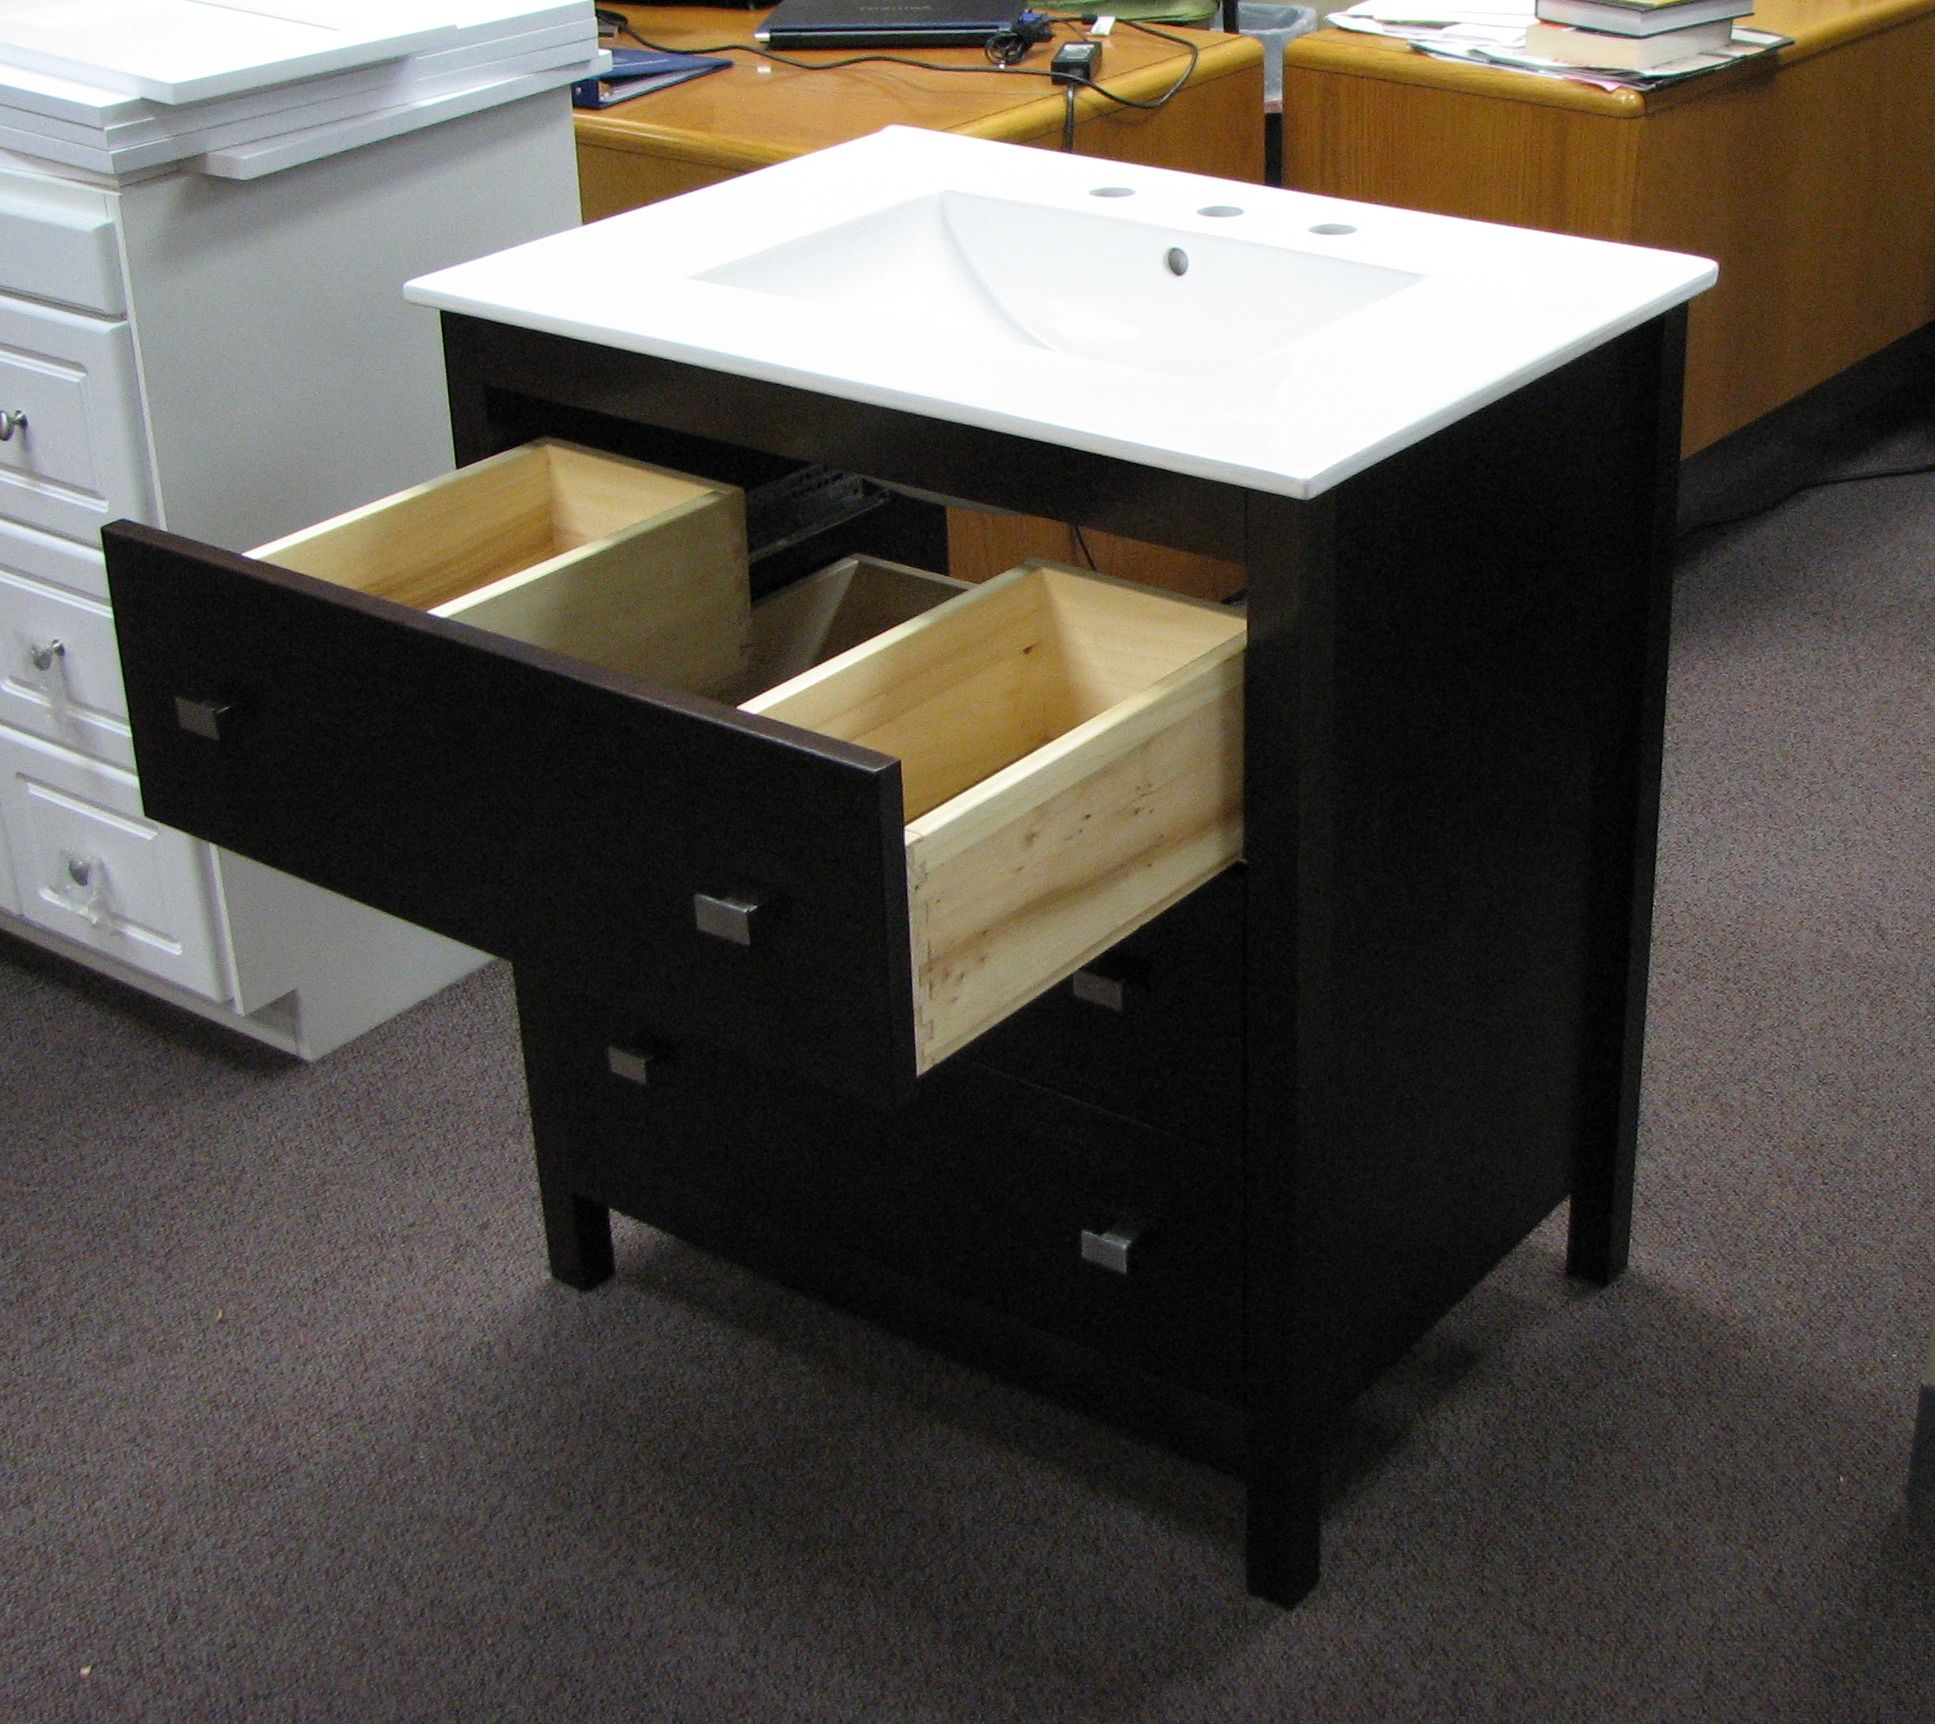 Merveilleux The Belltown Collection: This Smart Drawer Design Provides Useful Storage  While Allowing For Plumbing. No False Front!